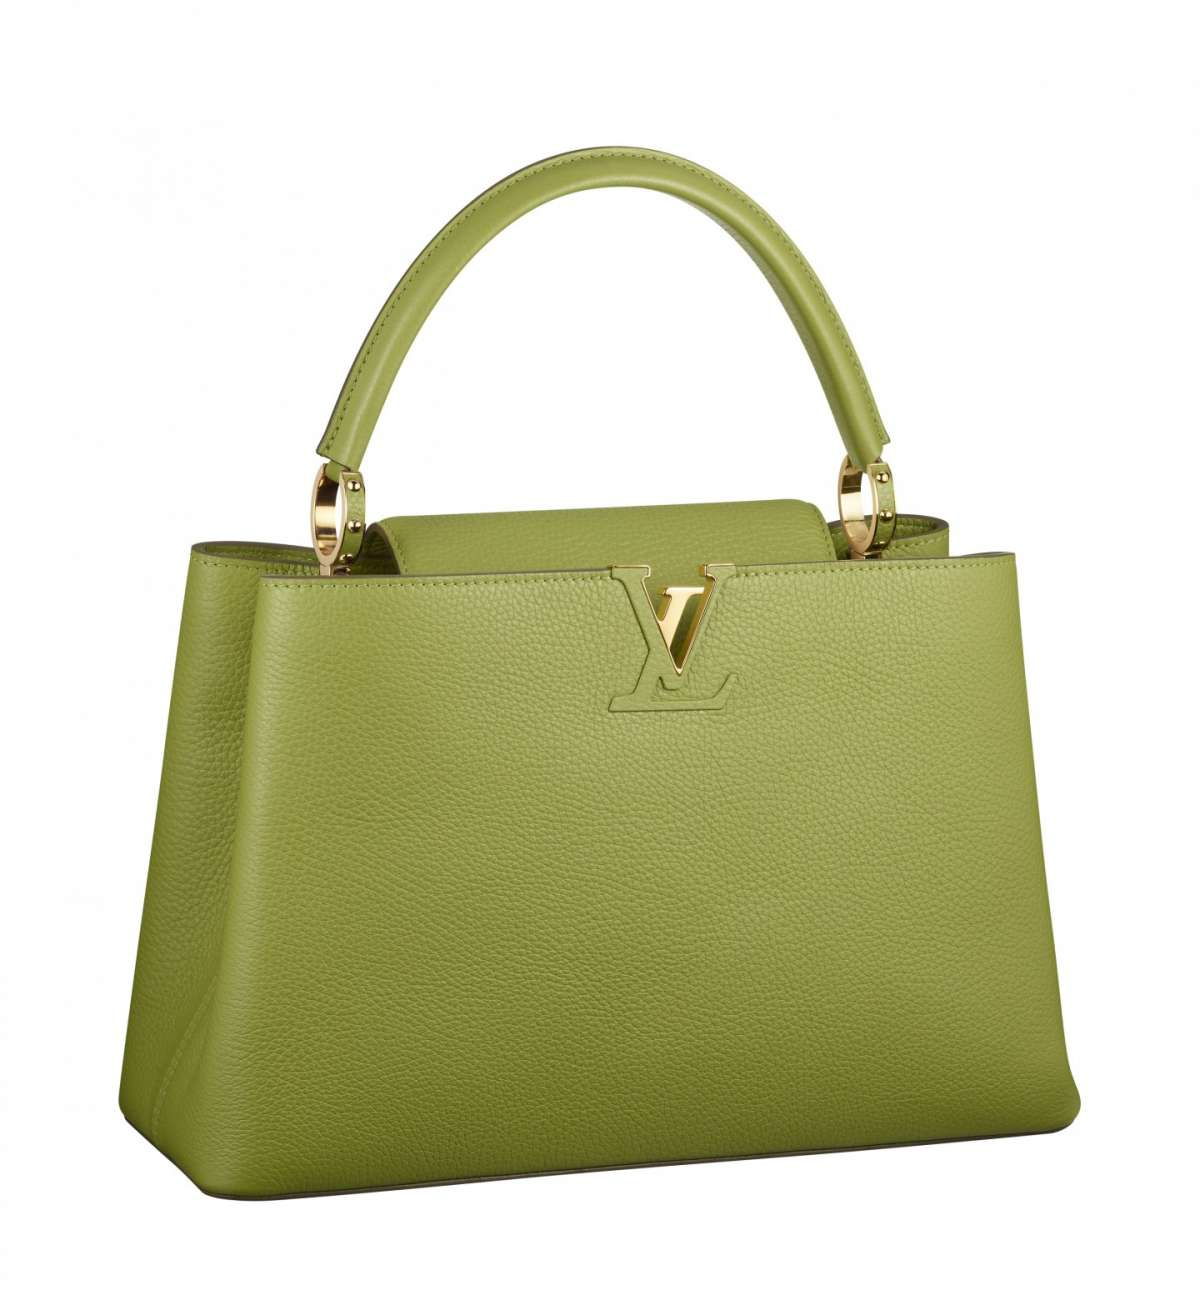 Handbag verde Louis Vuitton